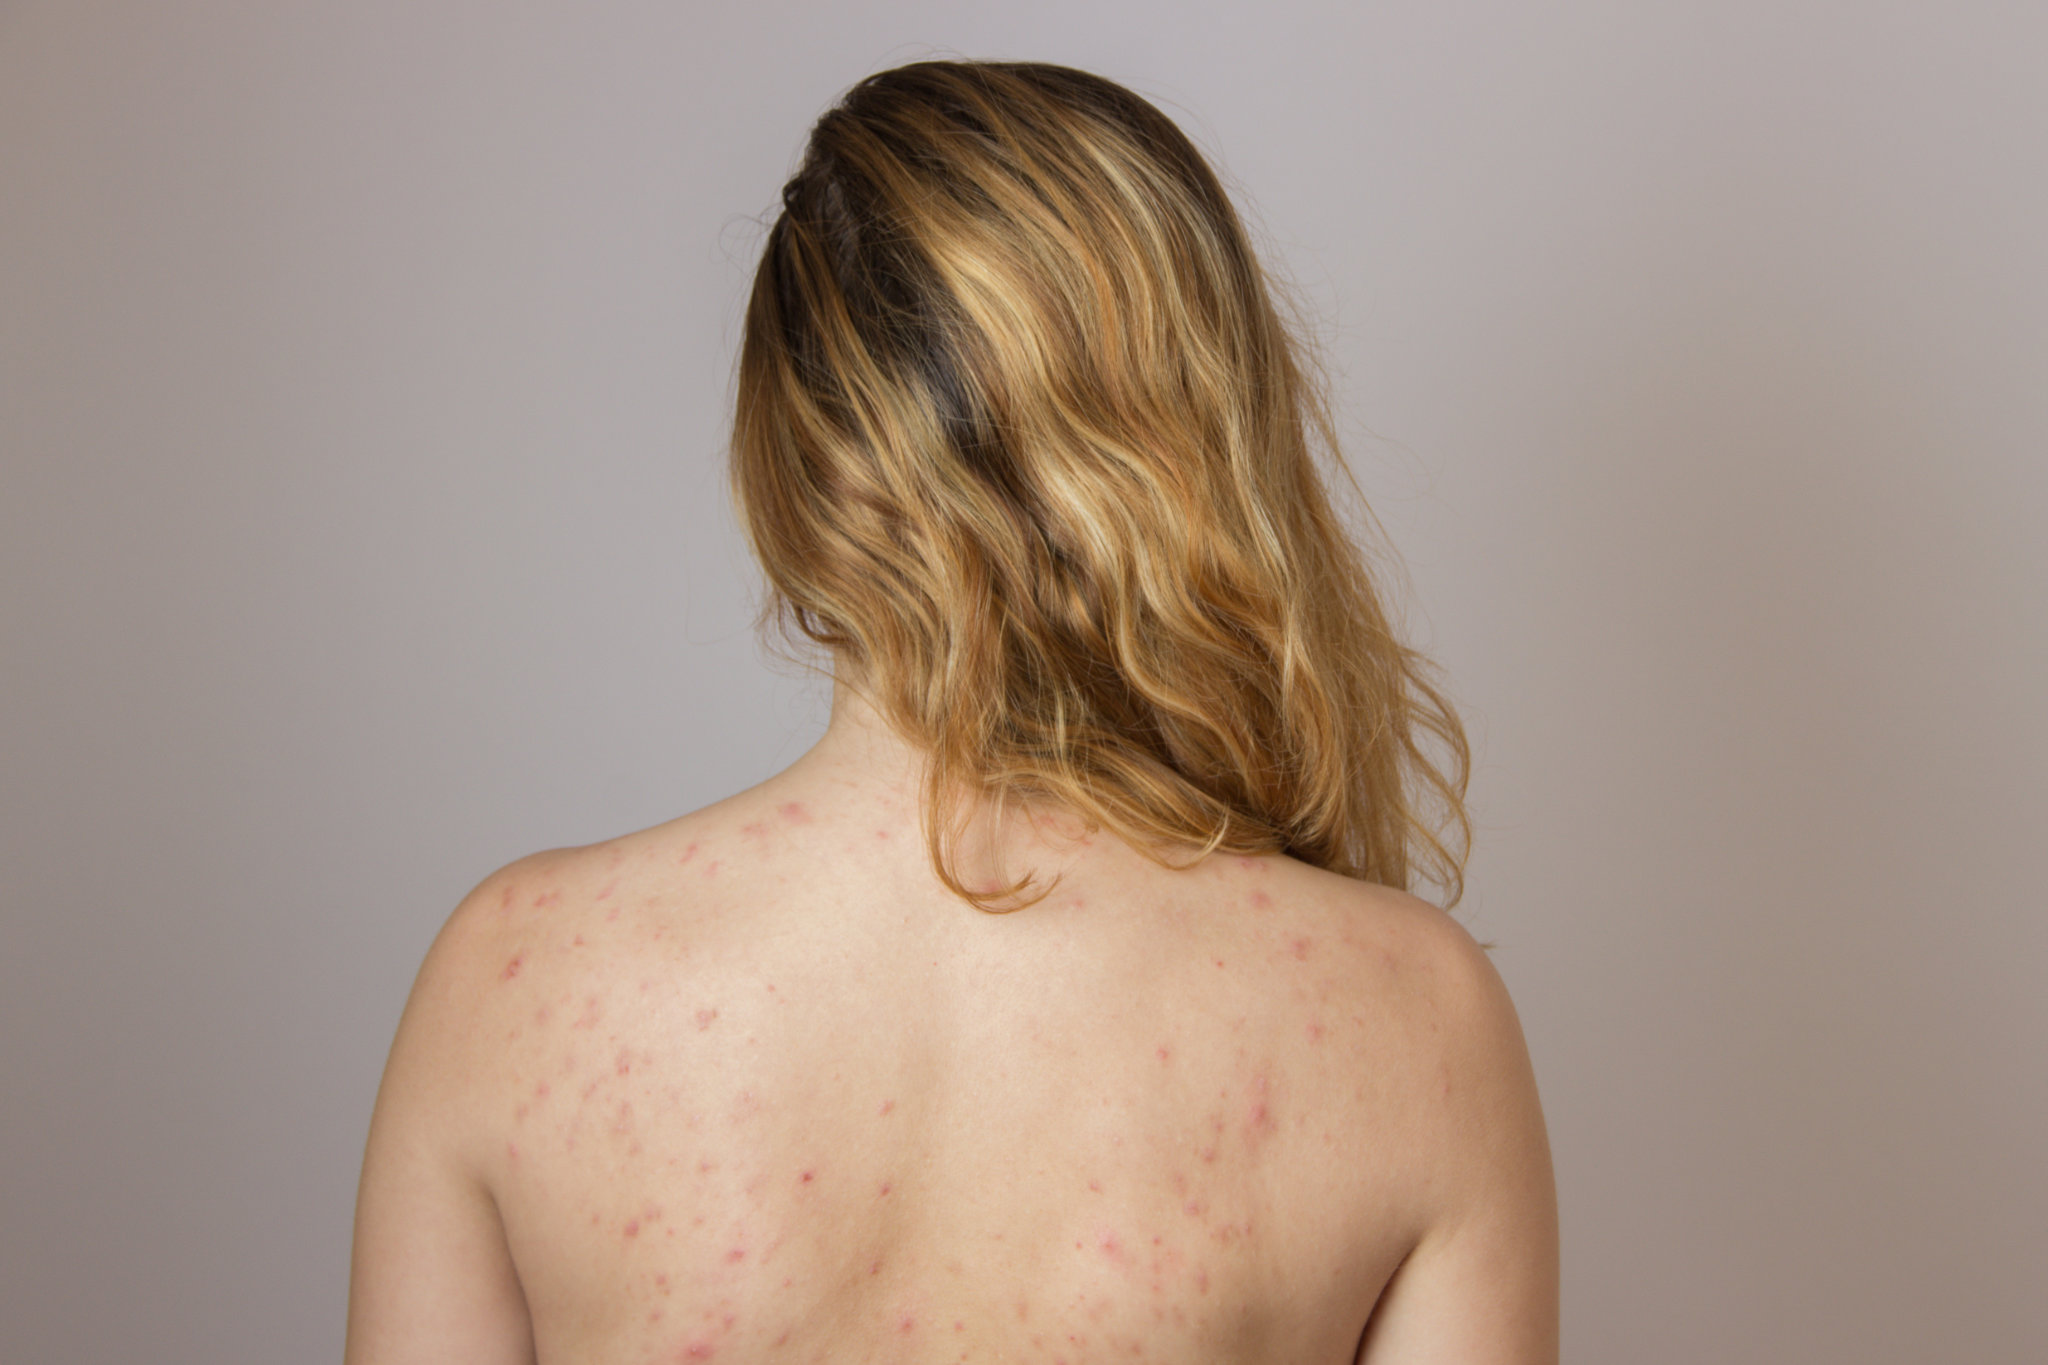 Woman's back with acne